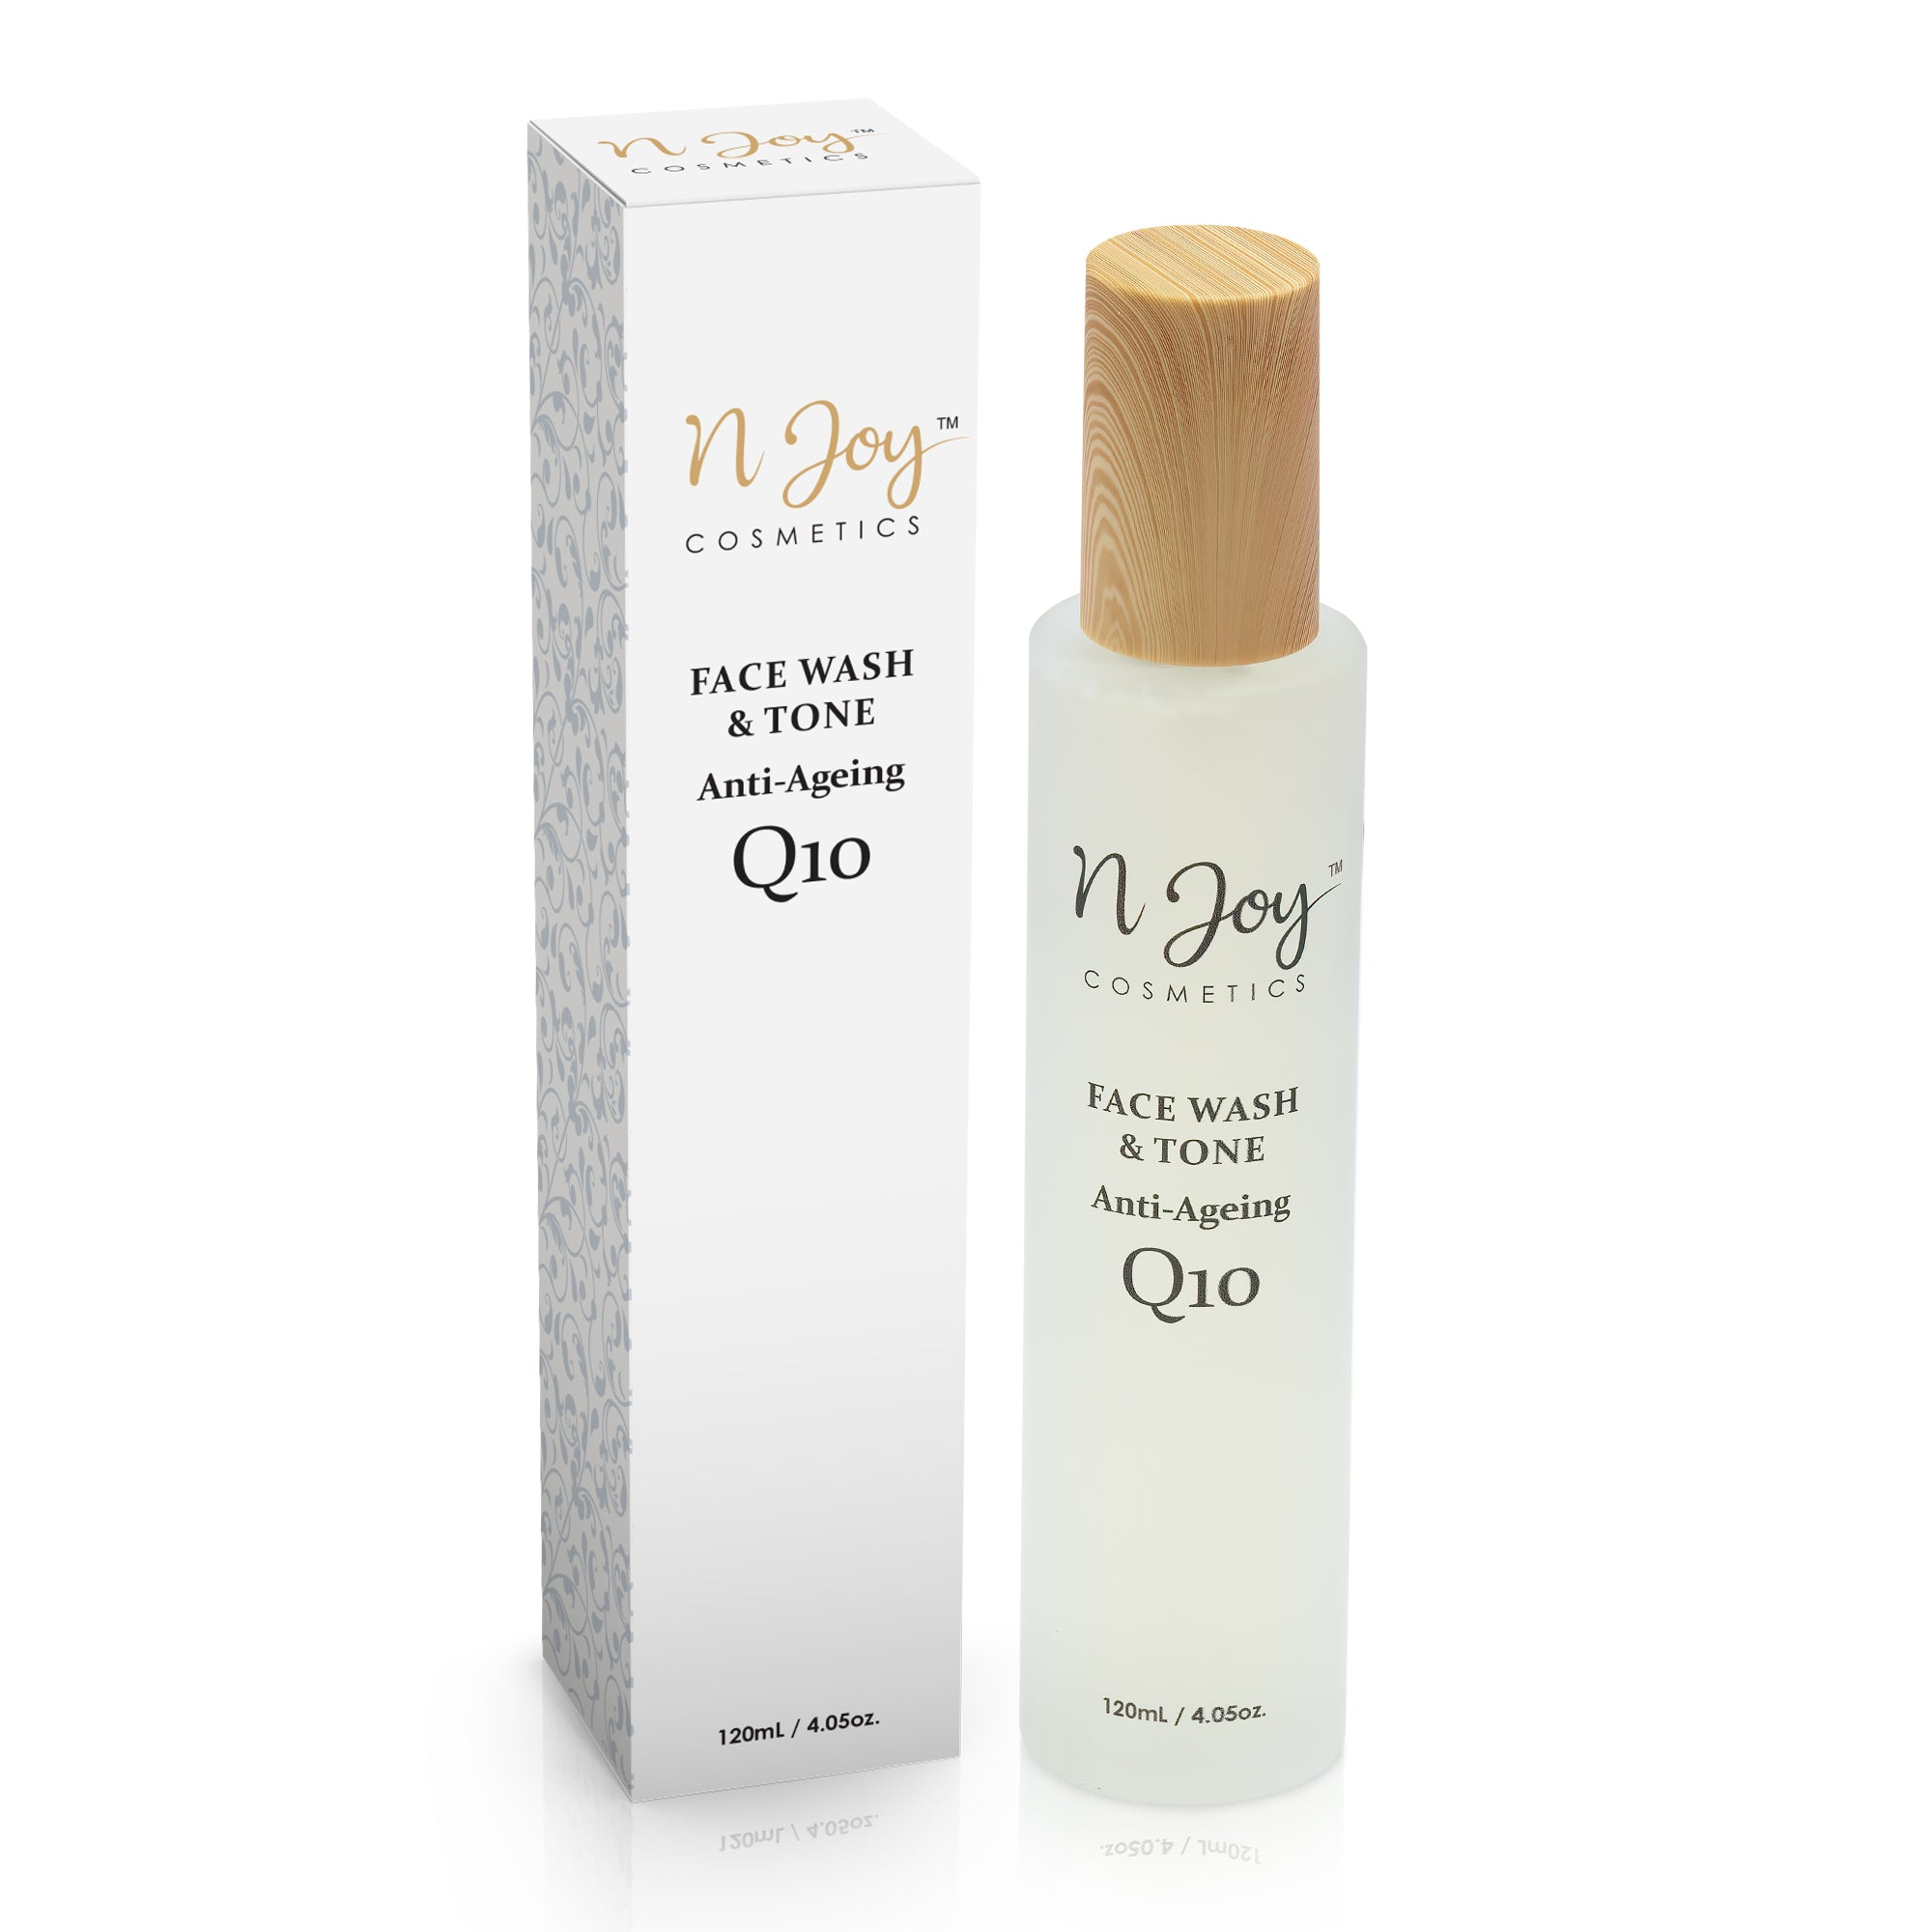 Q10 2-in-1 Face Wash & Tone